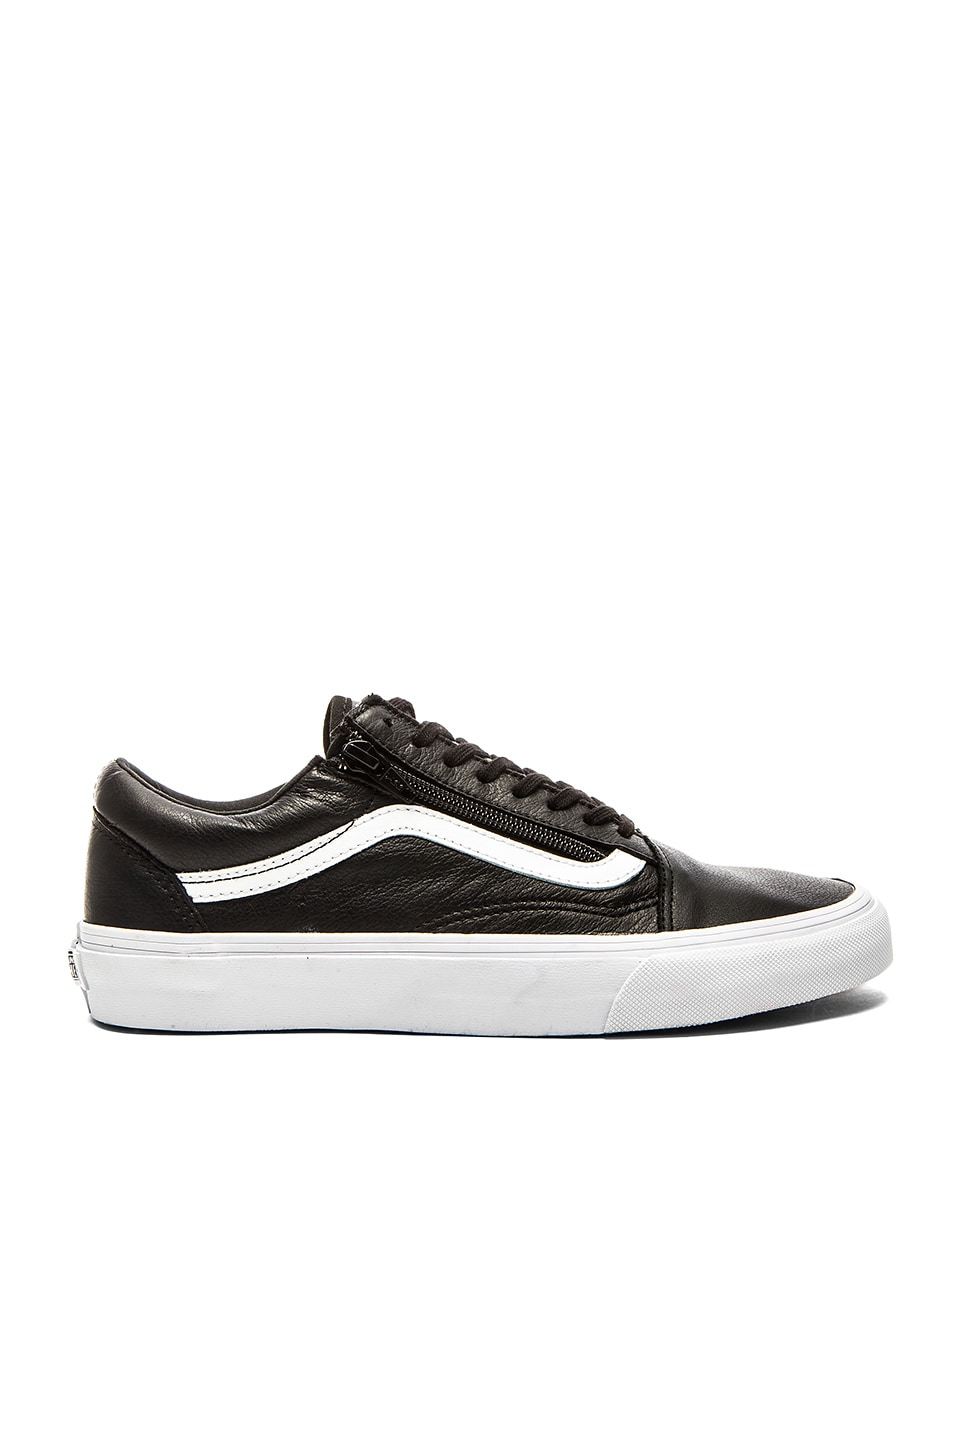 vans old skool leather zip